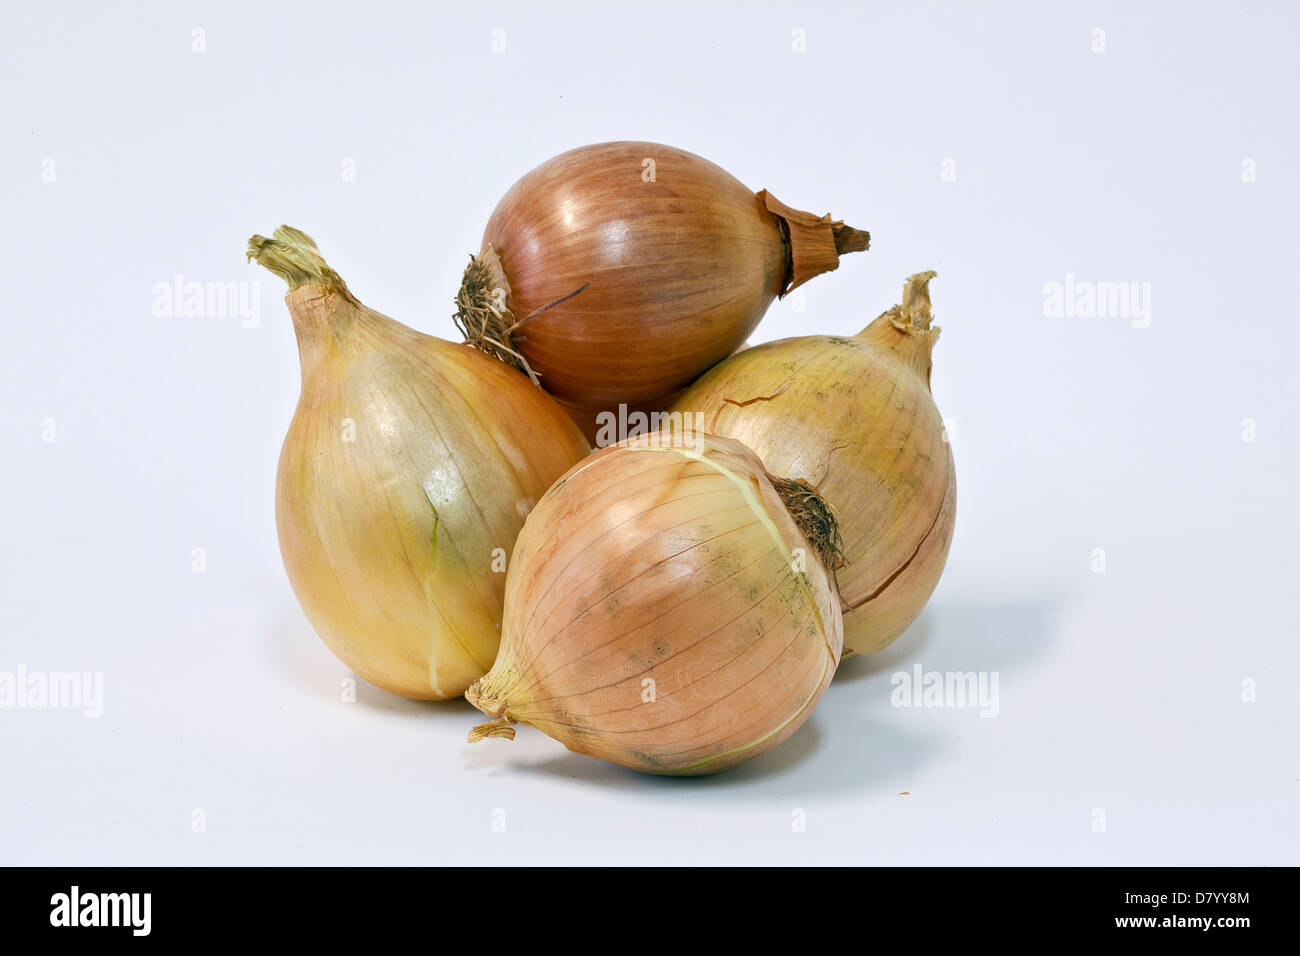 Four brown onions against a white background. - Stock Image